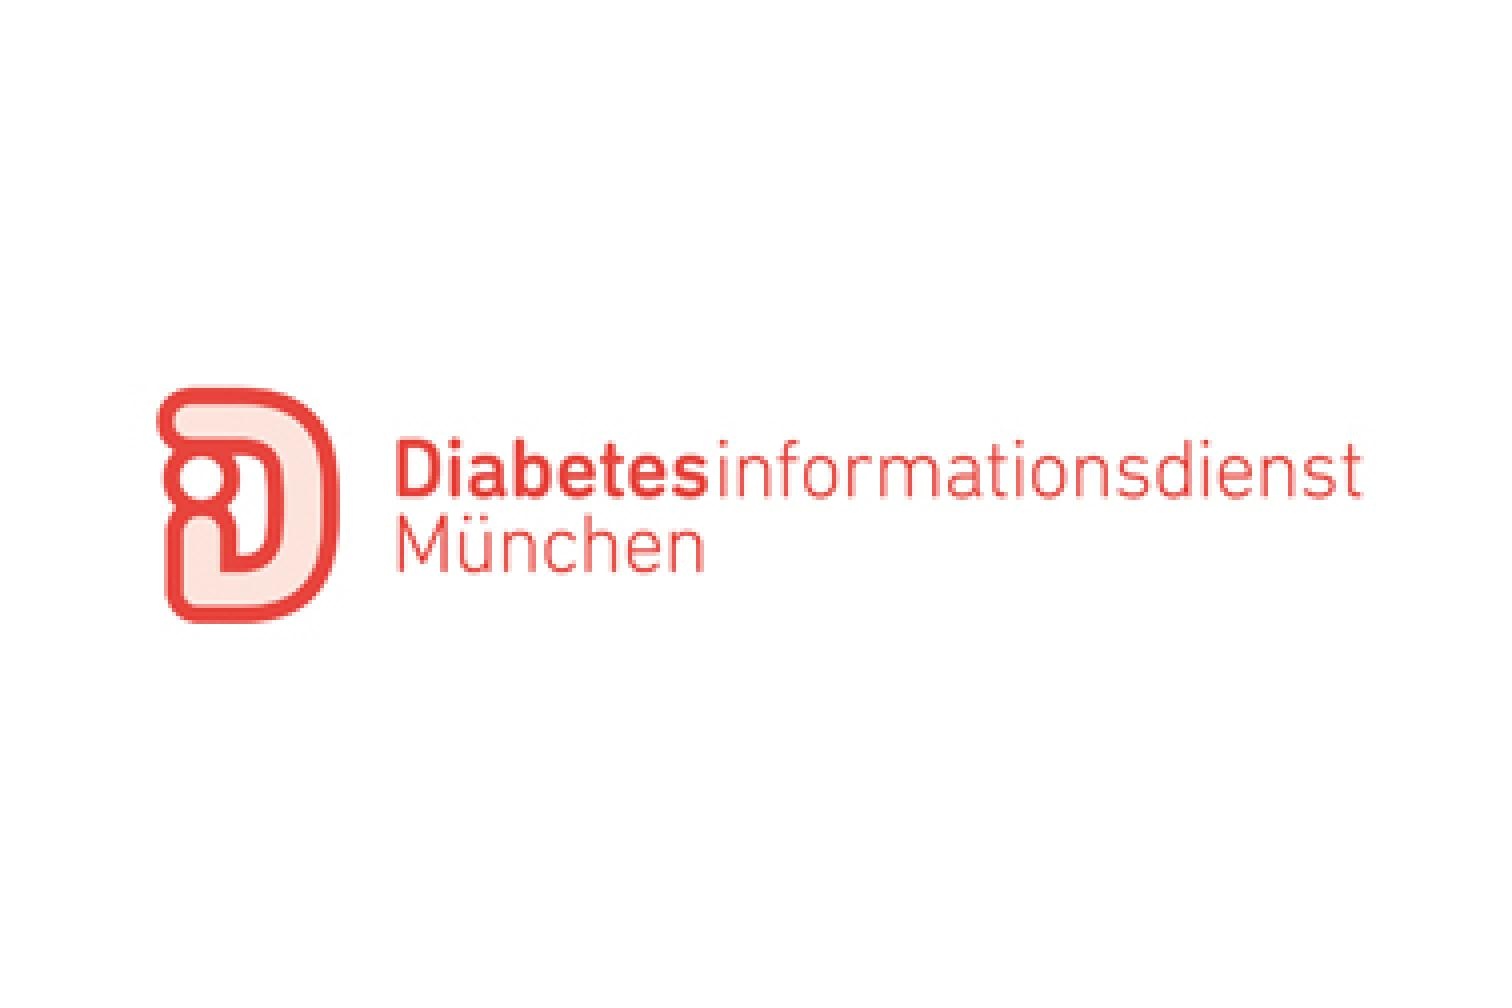 Logo Diabetesinformationsdienst